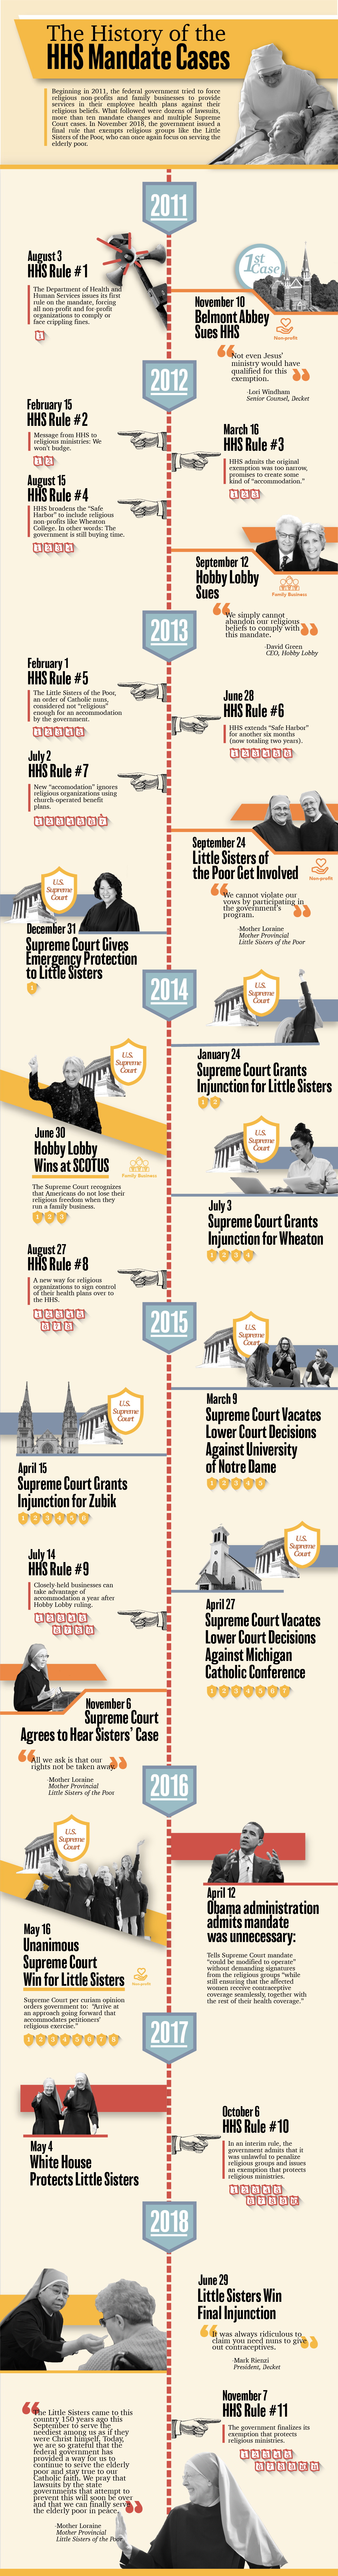 HHS History Infographic